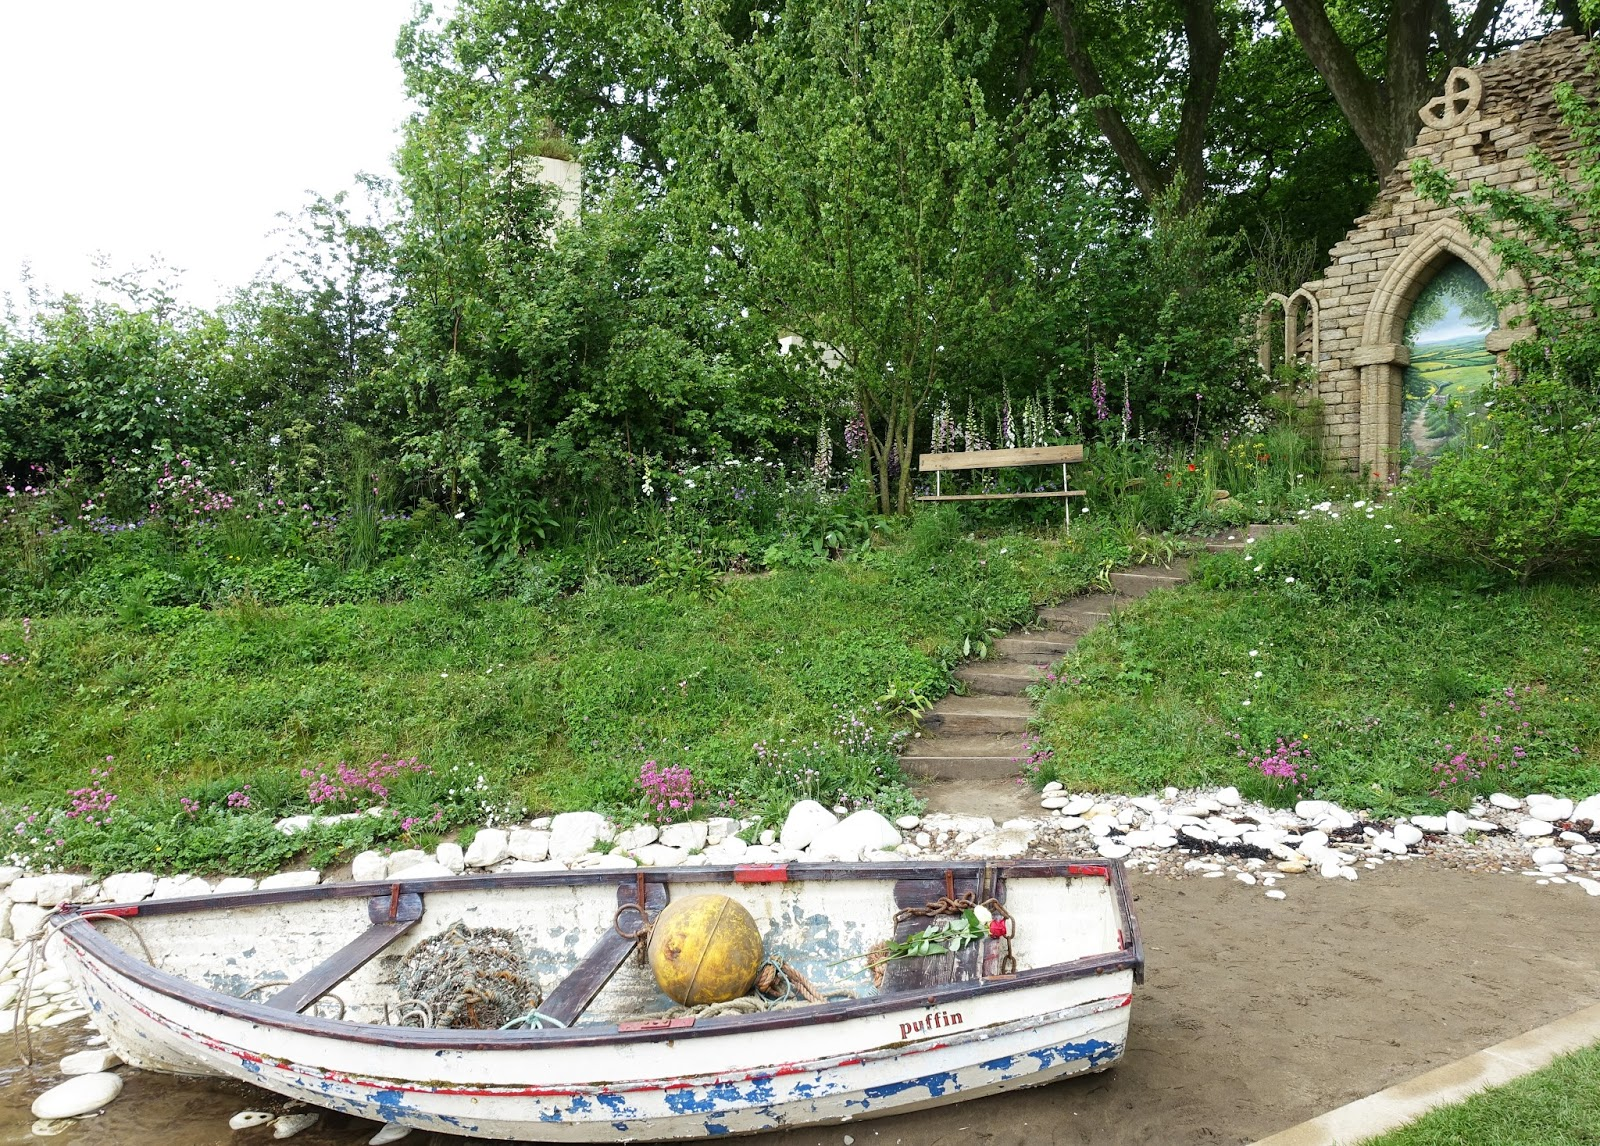 A boat is the centrepiece of Welcome to Yorkshire, silver medal winner at the Chelsea Flower Show 2017